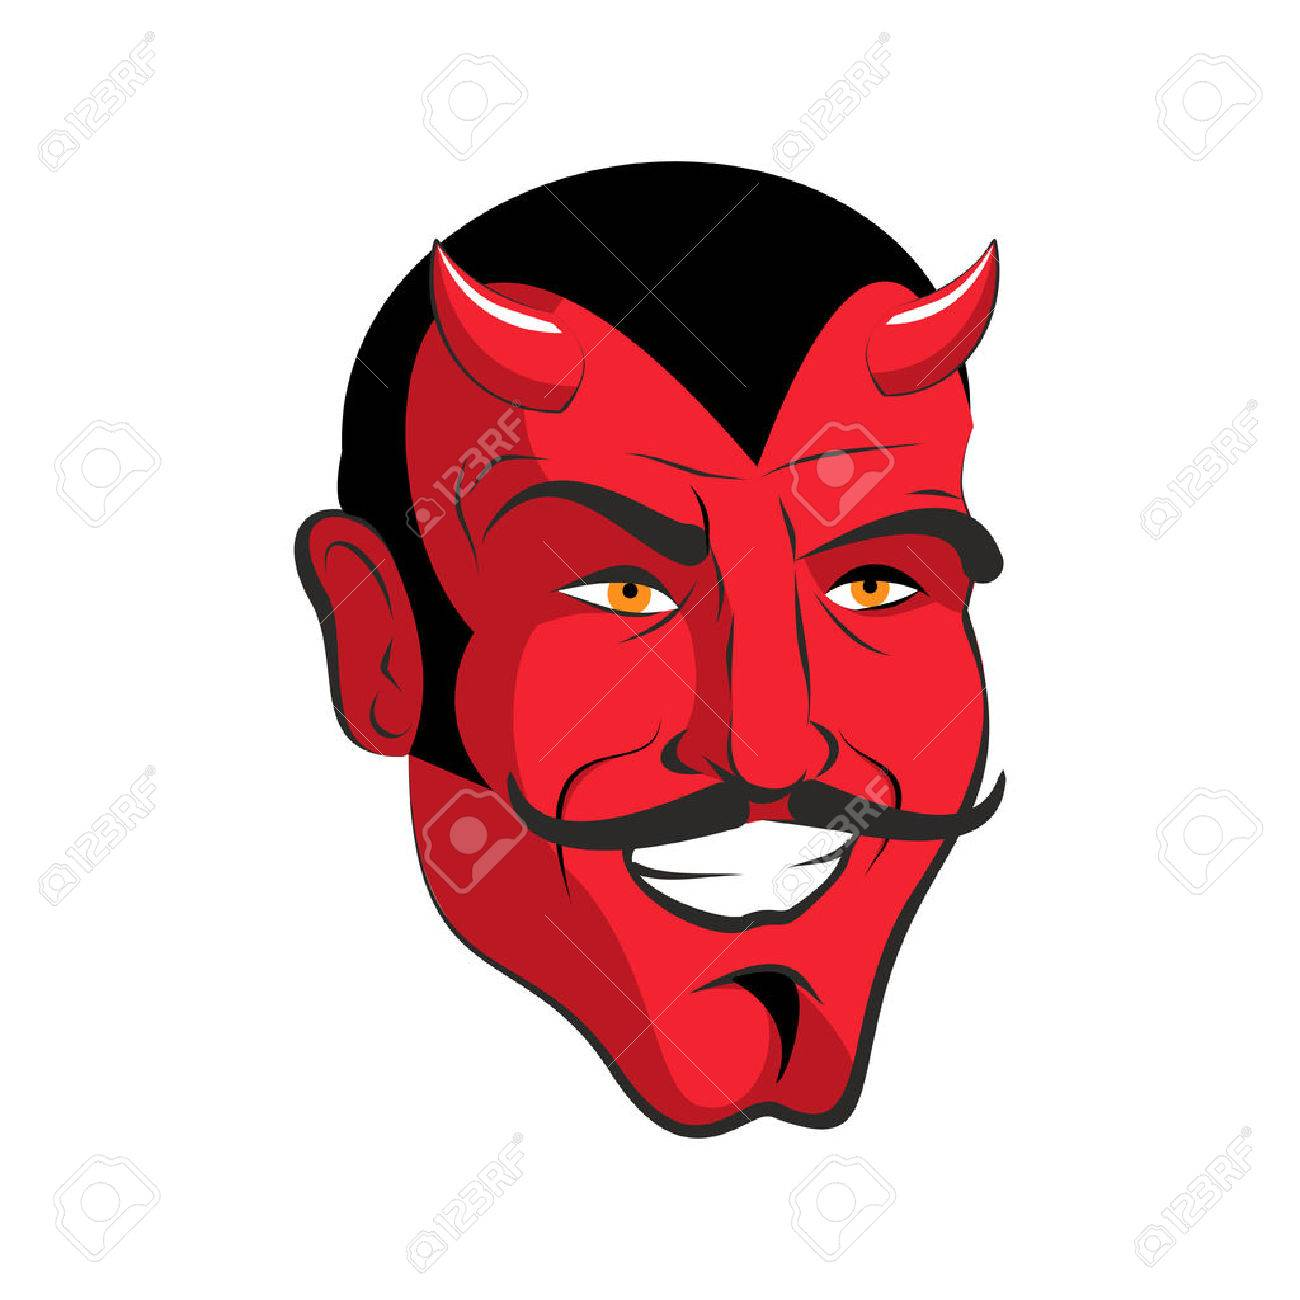 Red devil. Red head Merry demon with horns. Satan with mustache. Mephistopheles in with smile. - 51899496